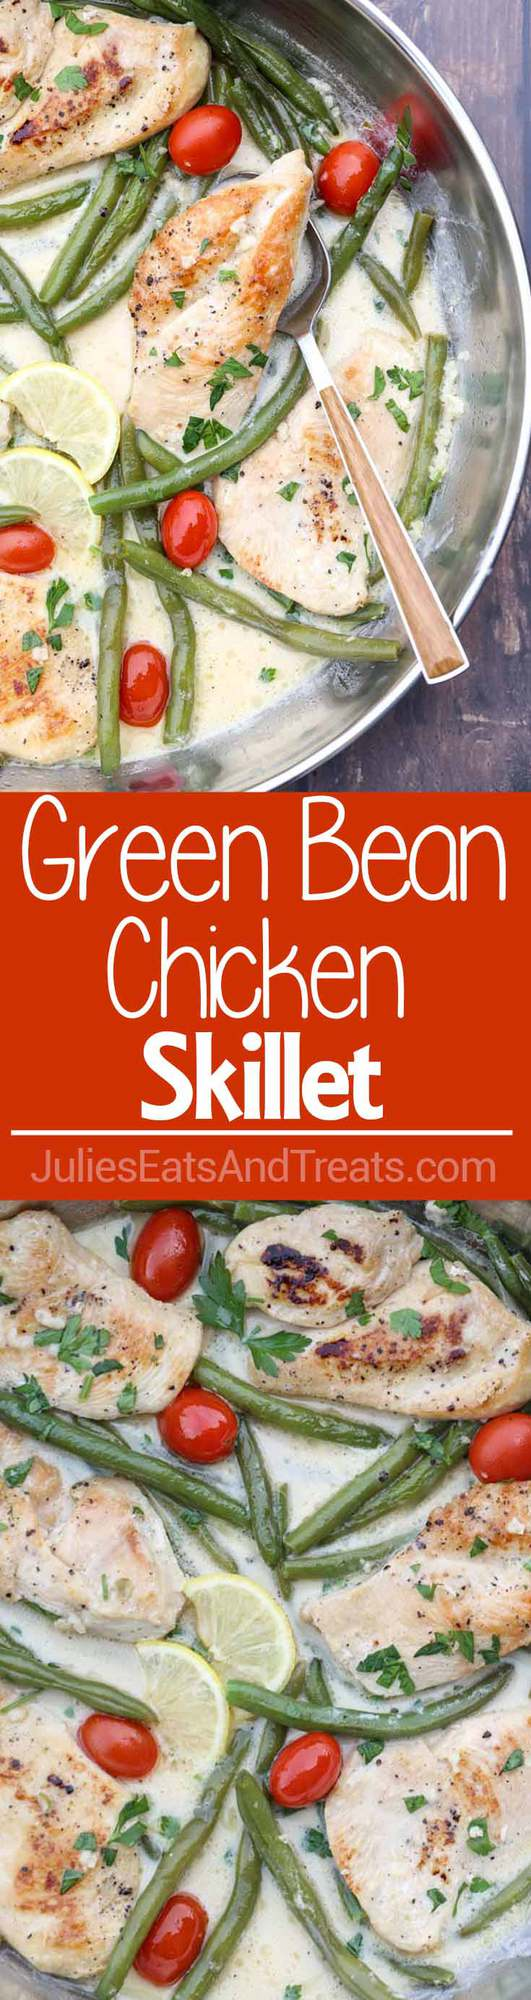 Green Bean Chicken Skillet ~Chicken Breast with String Green Beans and Tomatoes in a Creamy Garlic Wine Sauce! Quick and Easy Dinner Recipe Ready in 30 Minutes!